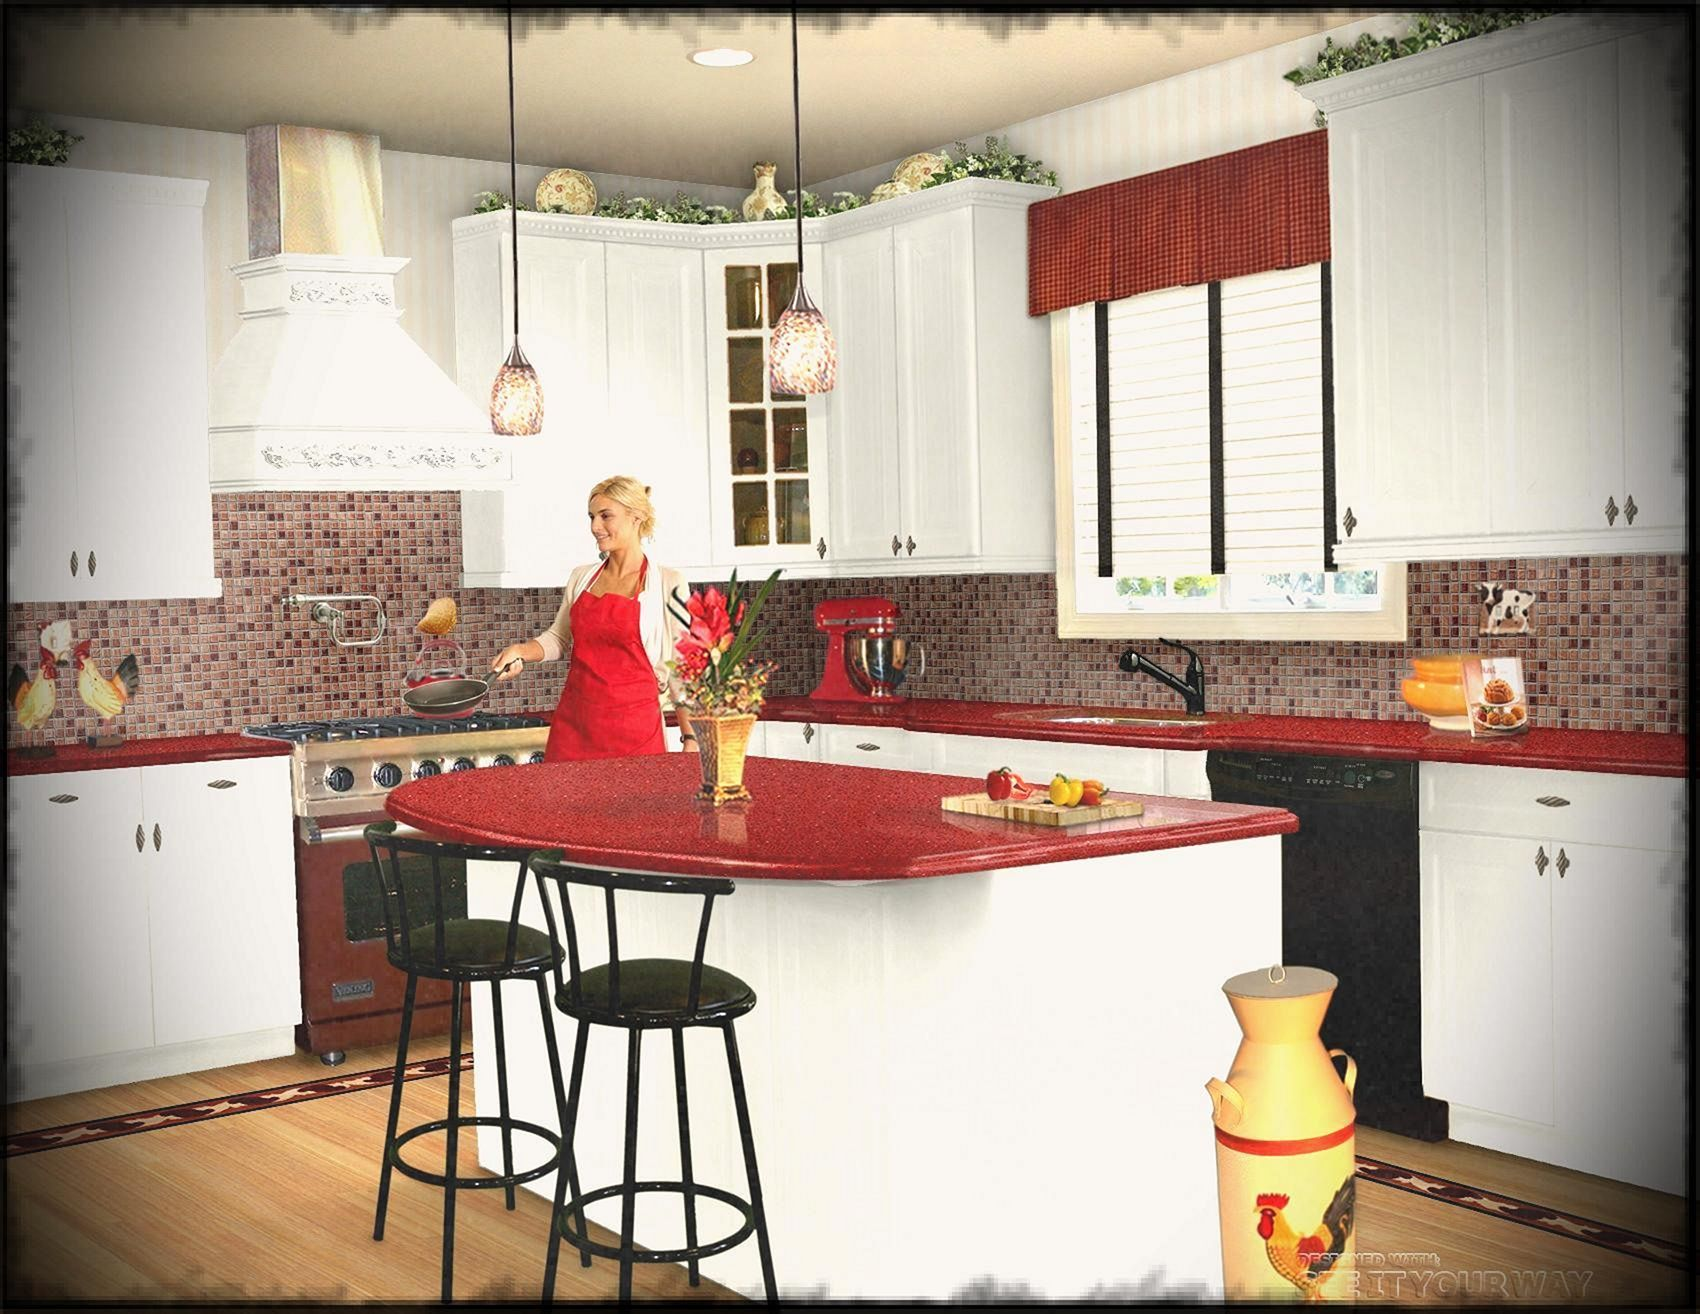 Breathtaking 20 Incredible Christmas Red Kitchen Wall Color Design Ideas Https Usdecorating Com Red Kitchen Walls Modern Kitchen Design Kitchen Wall Colors